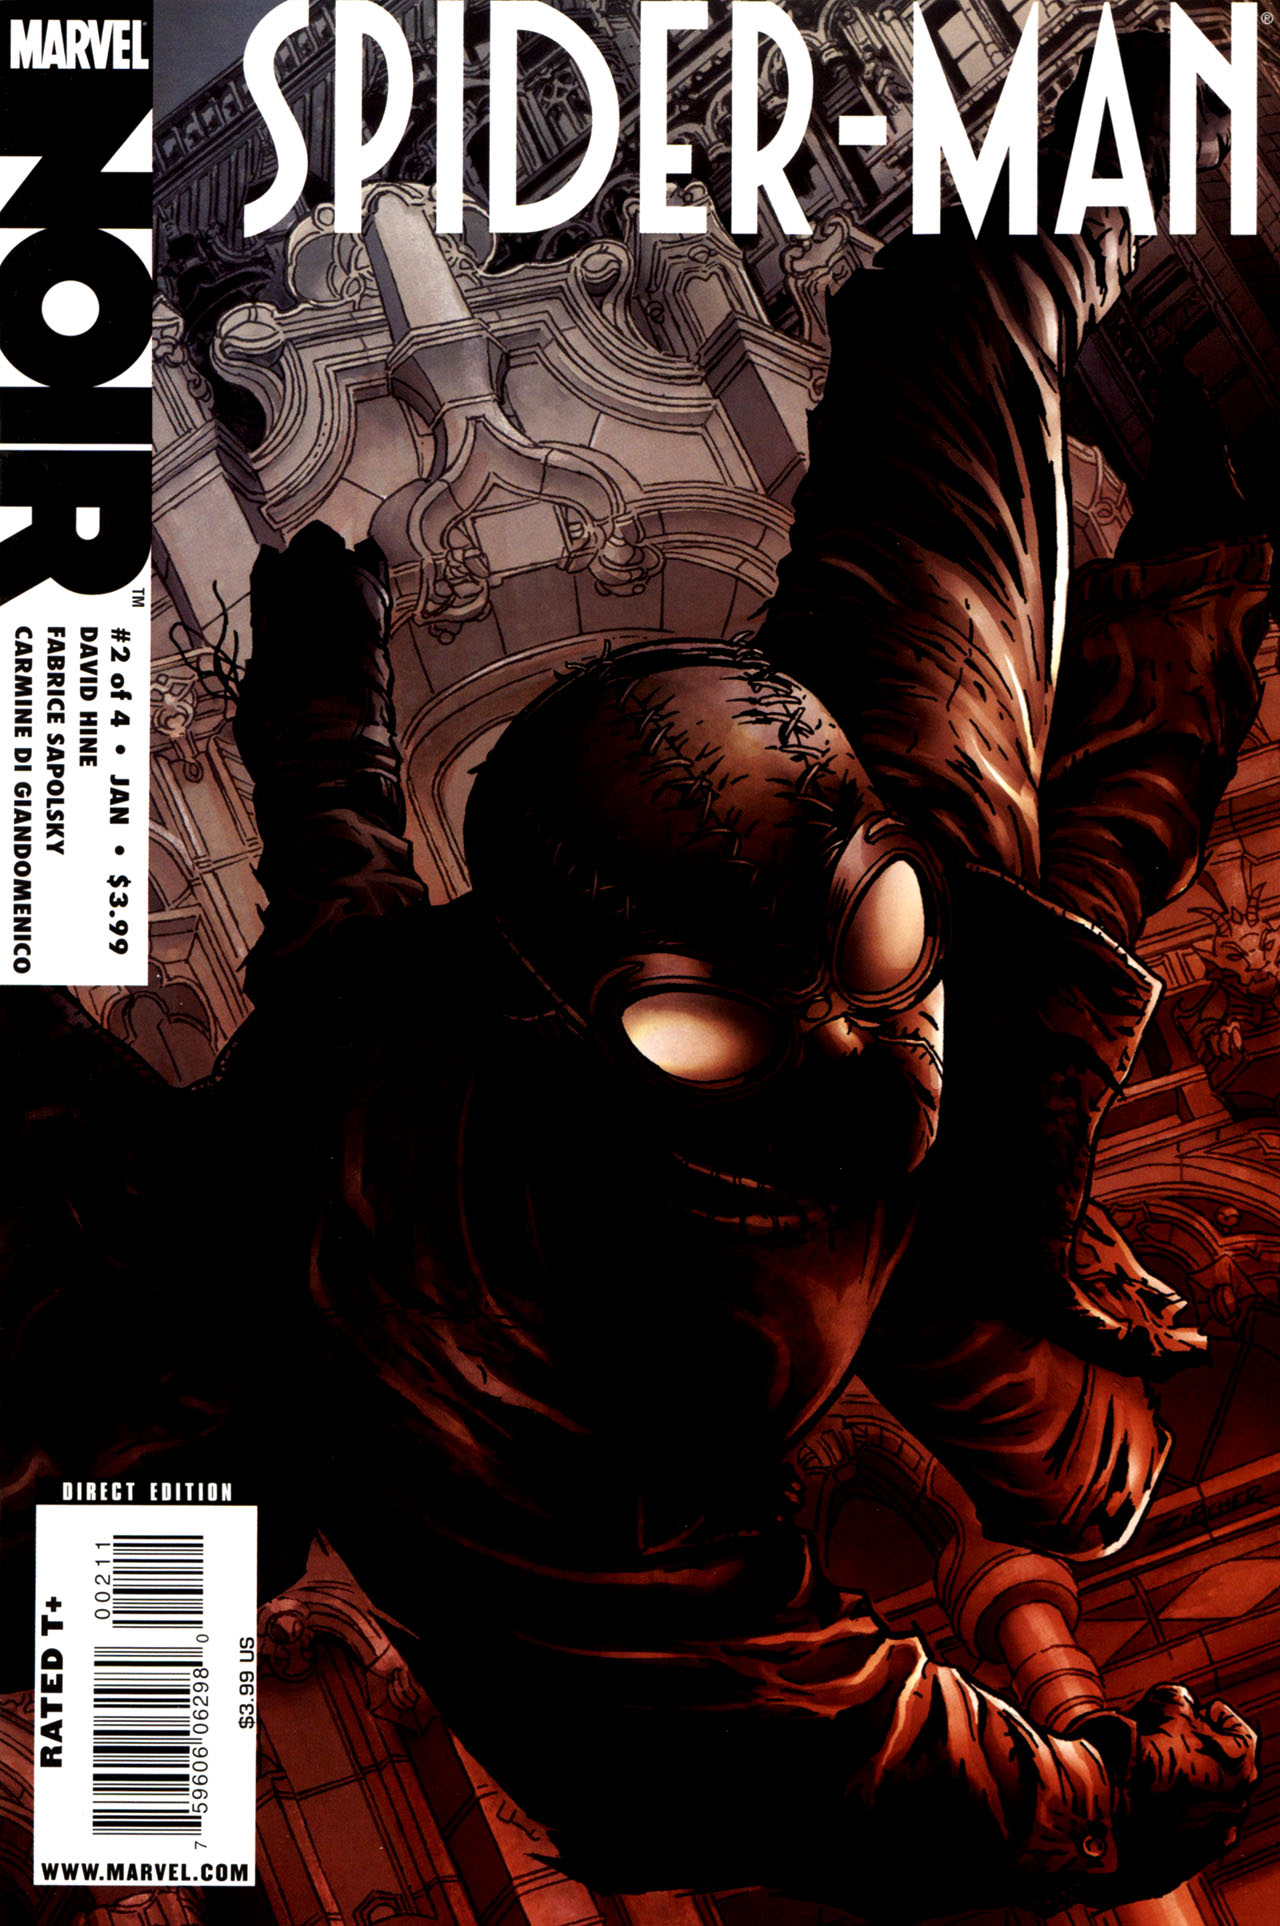 spider-man noir vol 1 2 | marvel database | fandom poweredwikia